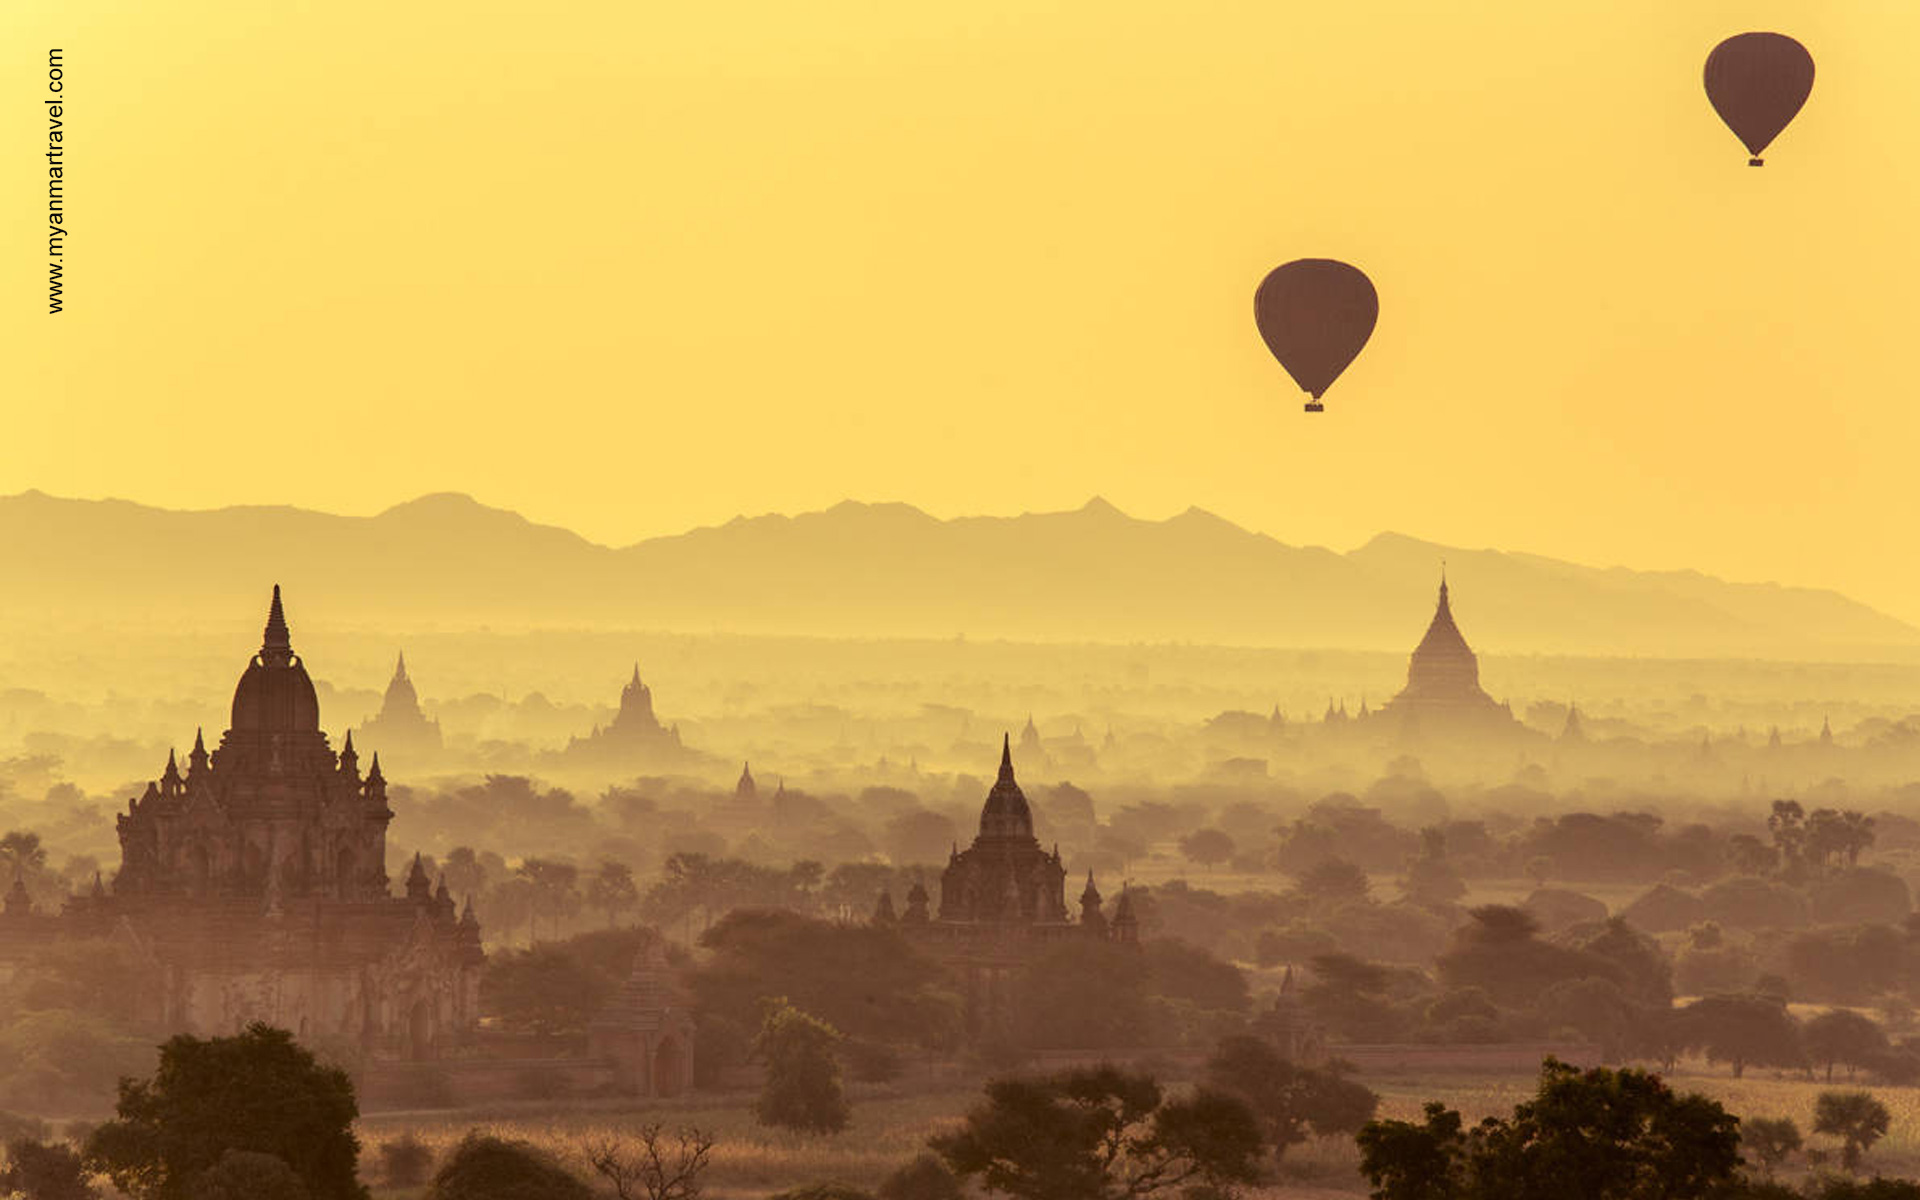 Ballon flight over Bagan